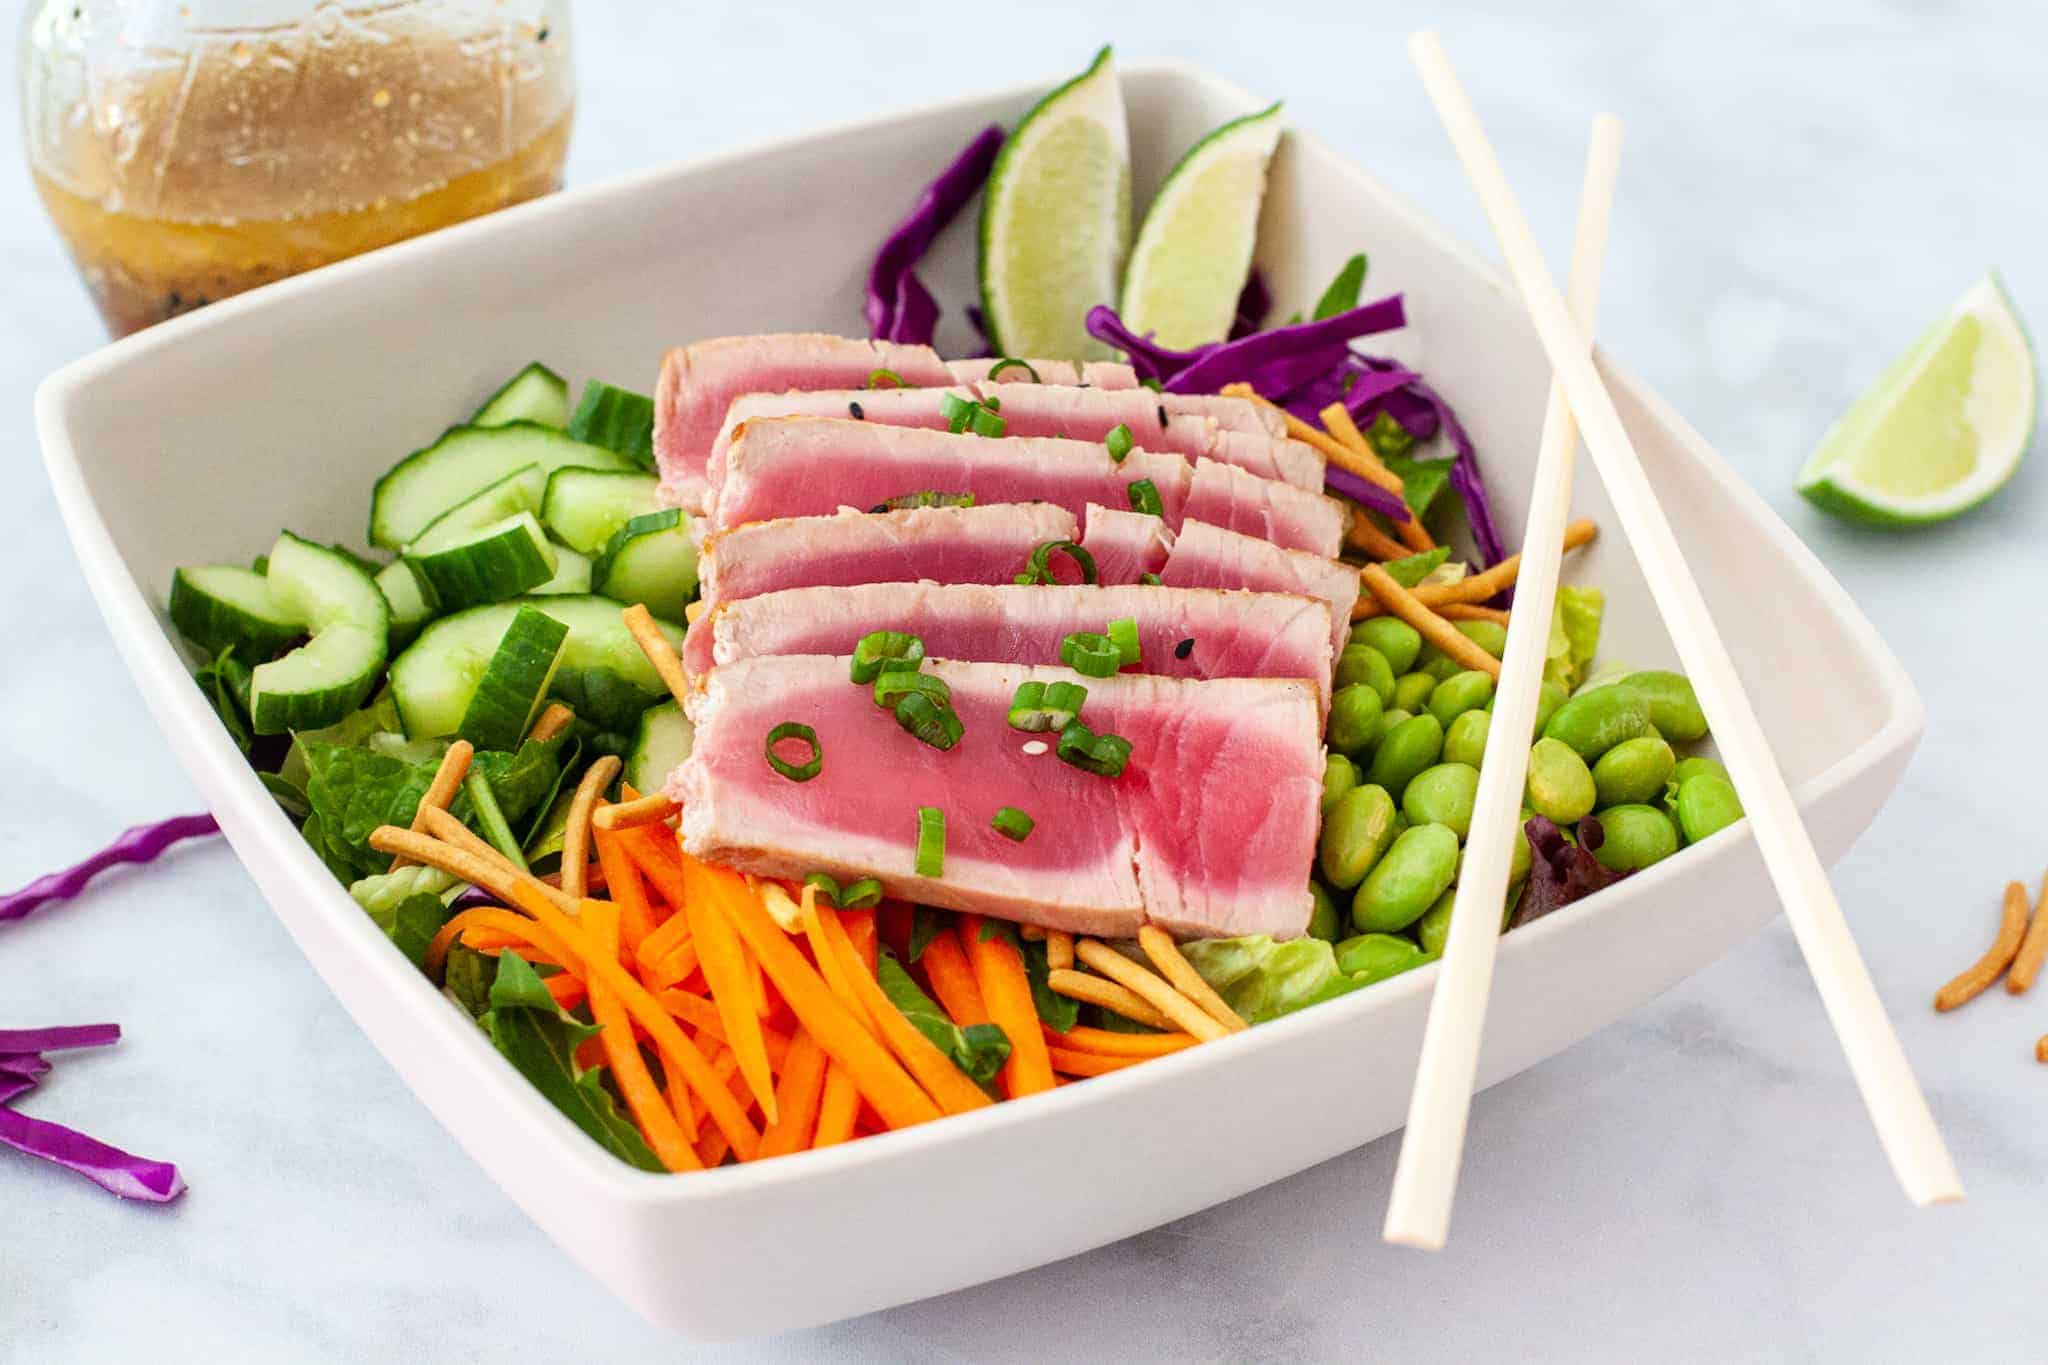 Side angle view of a serving of Asian chopped salad.